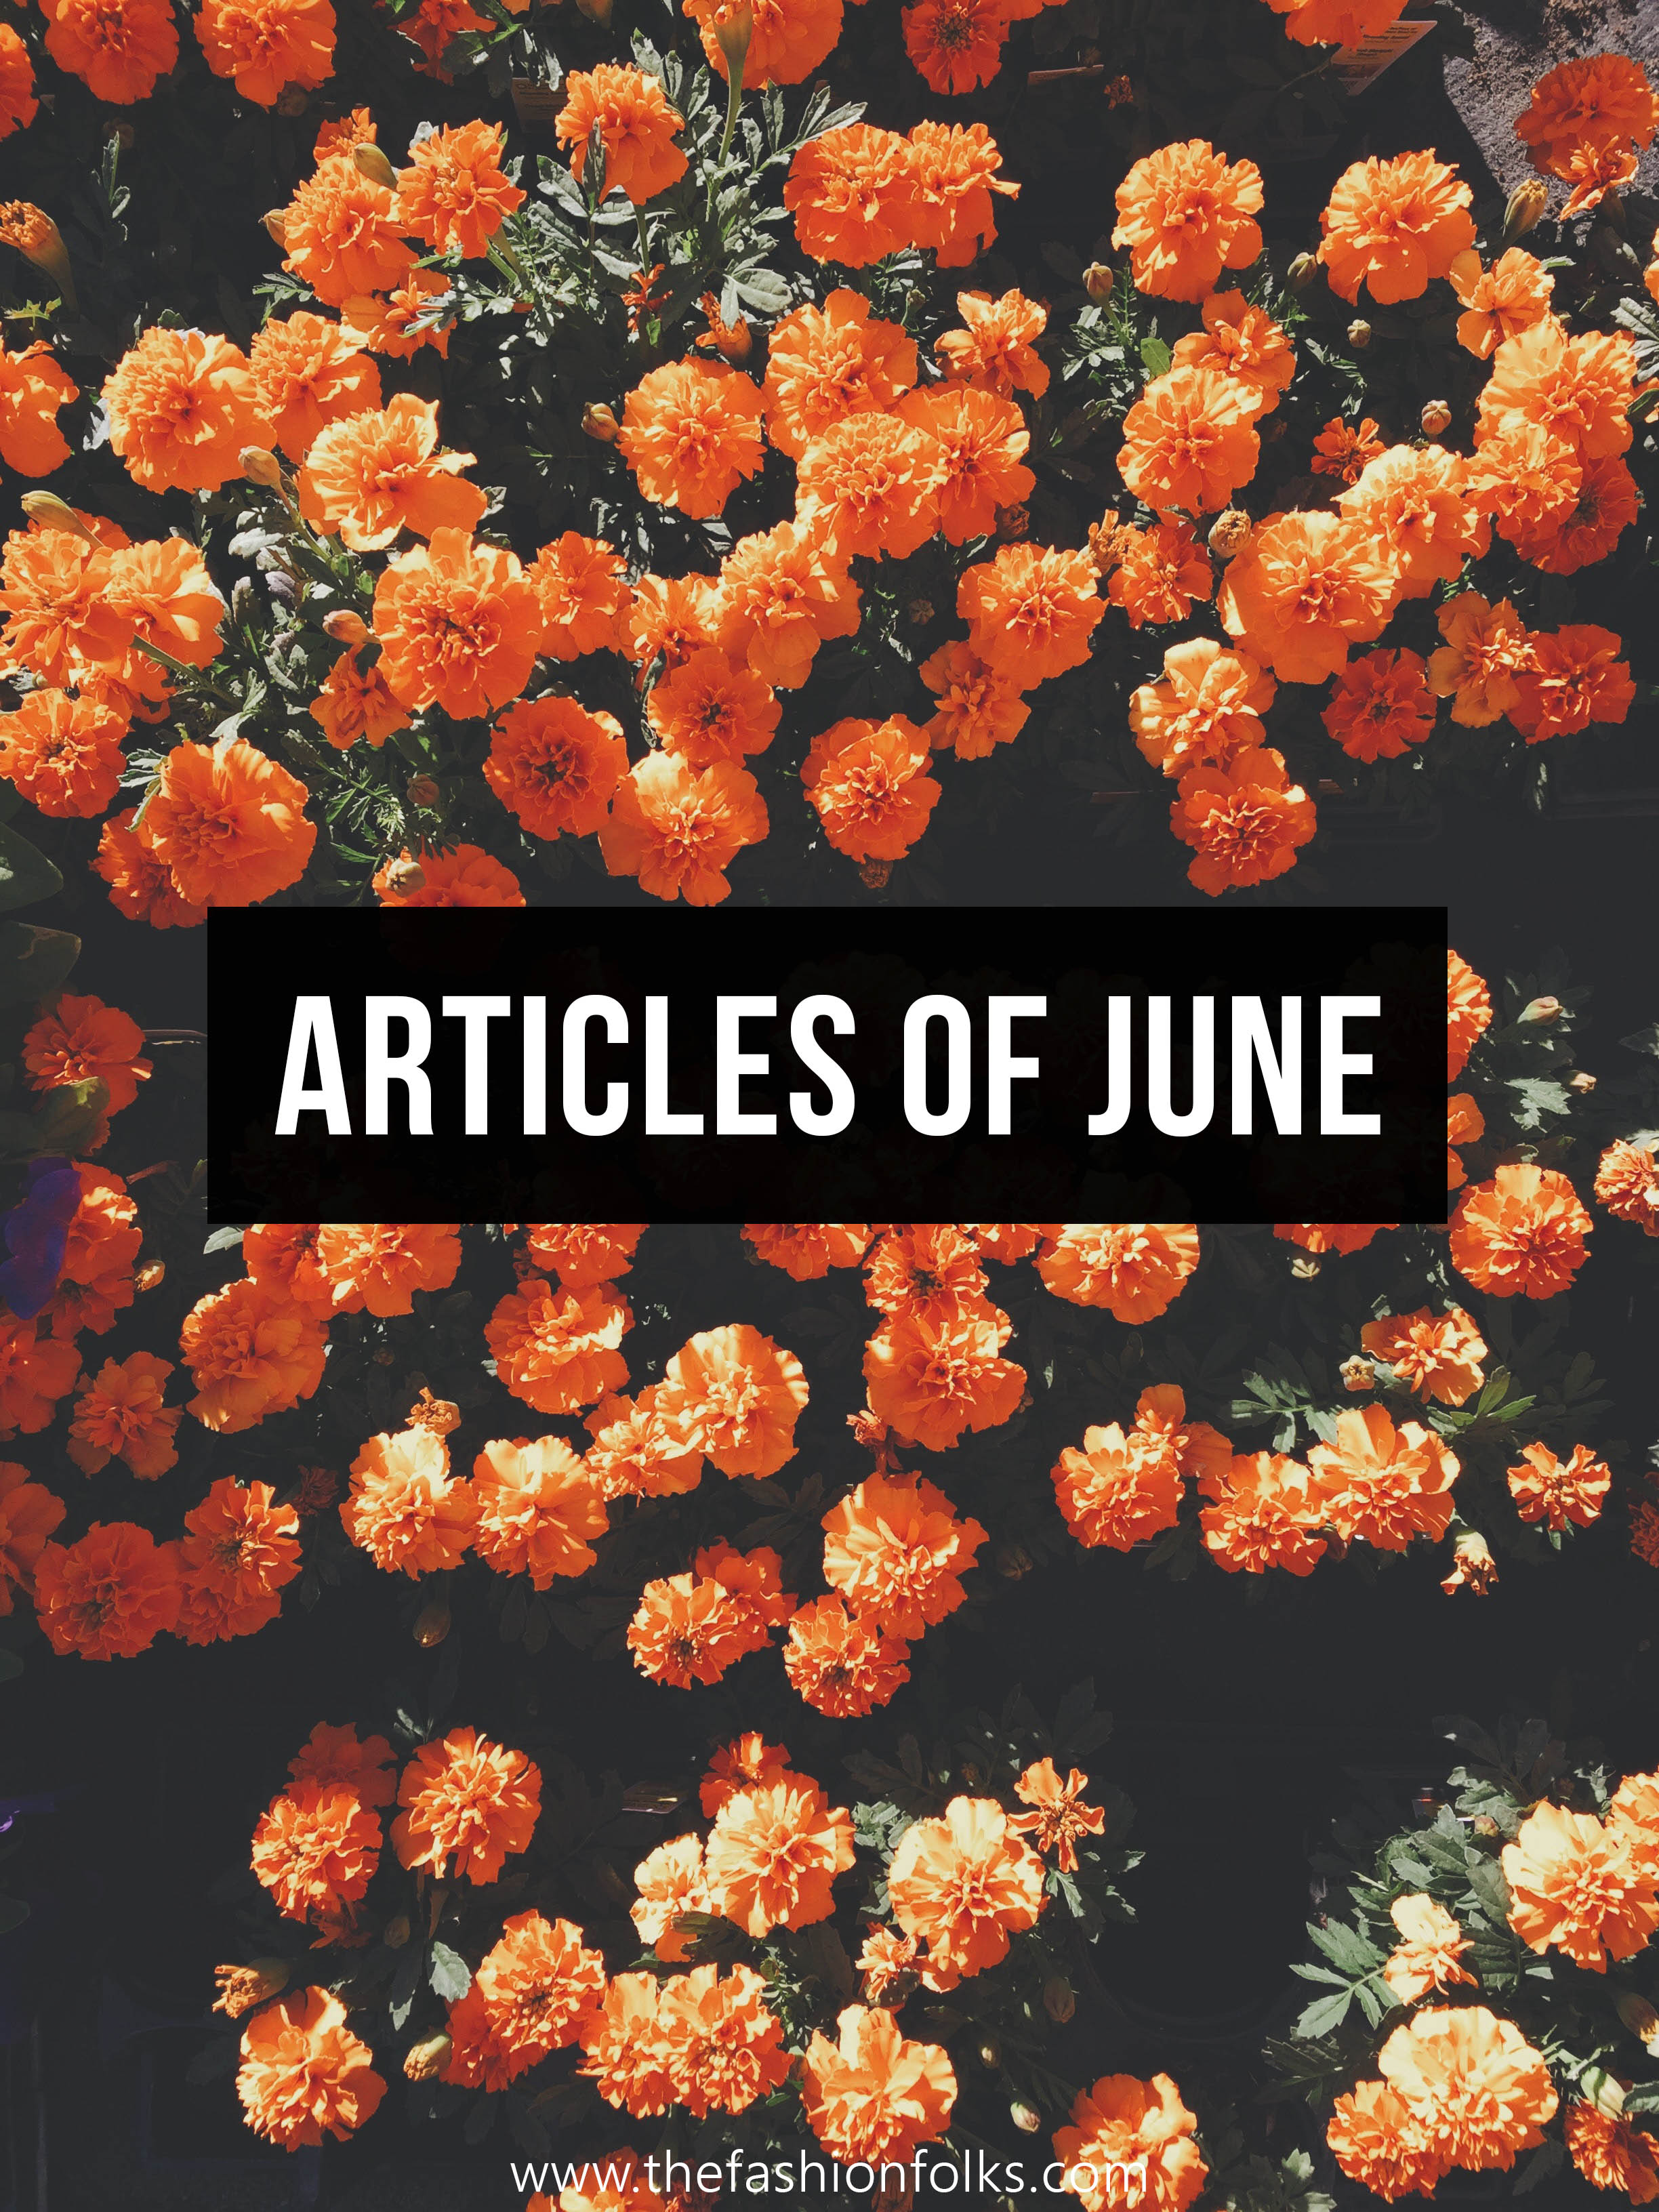 Articles of June 2018